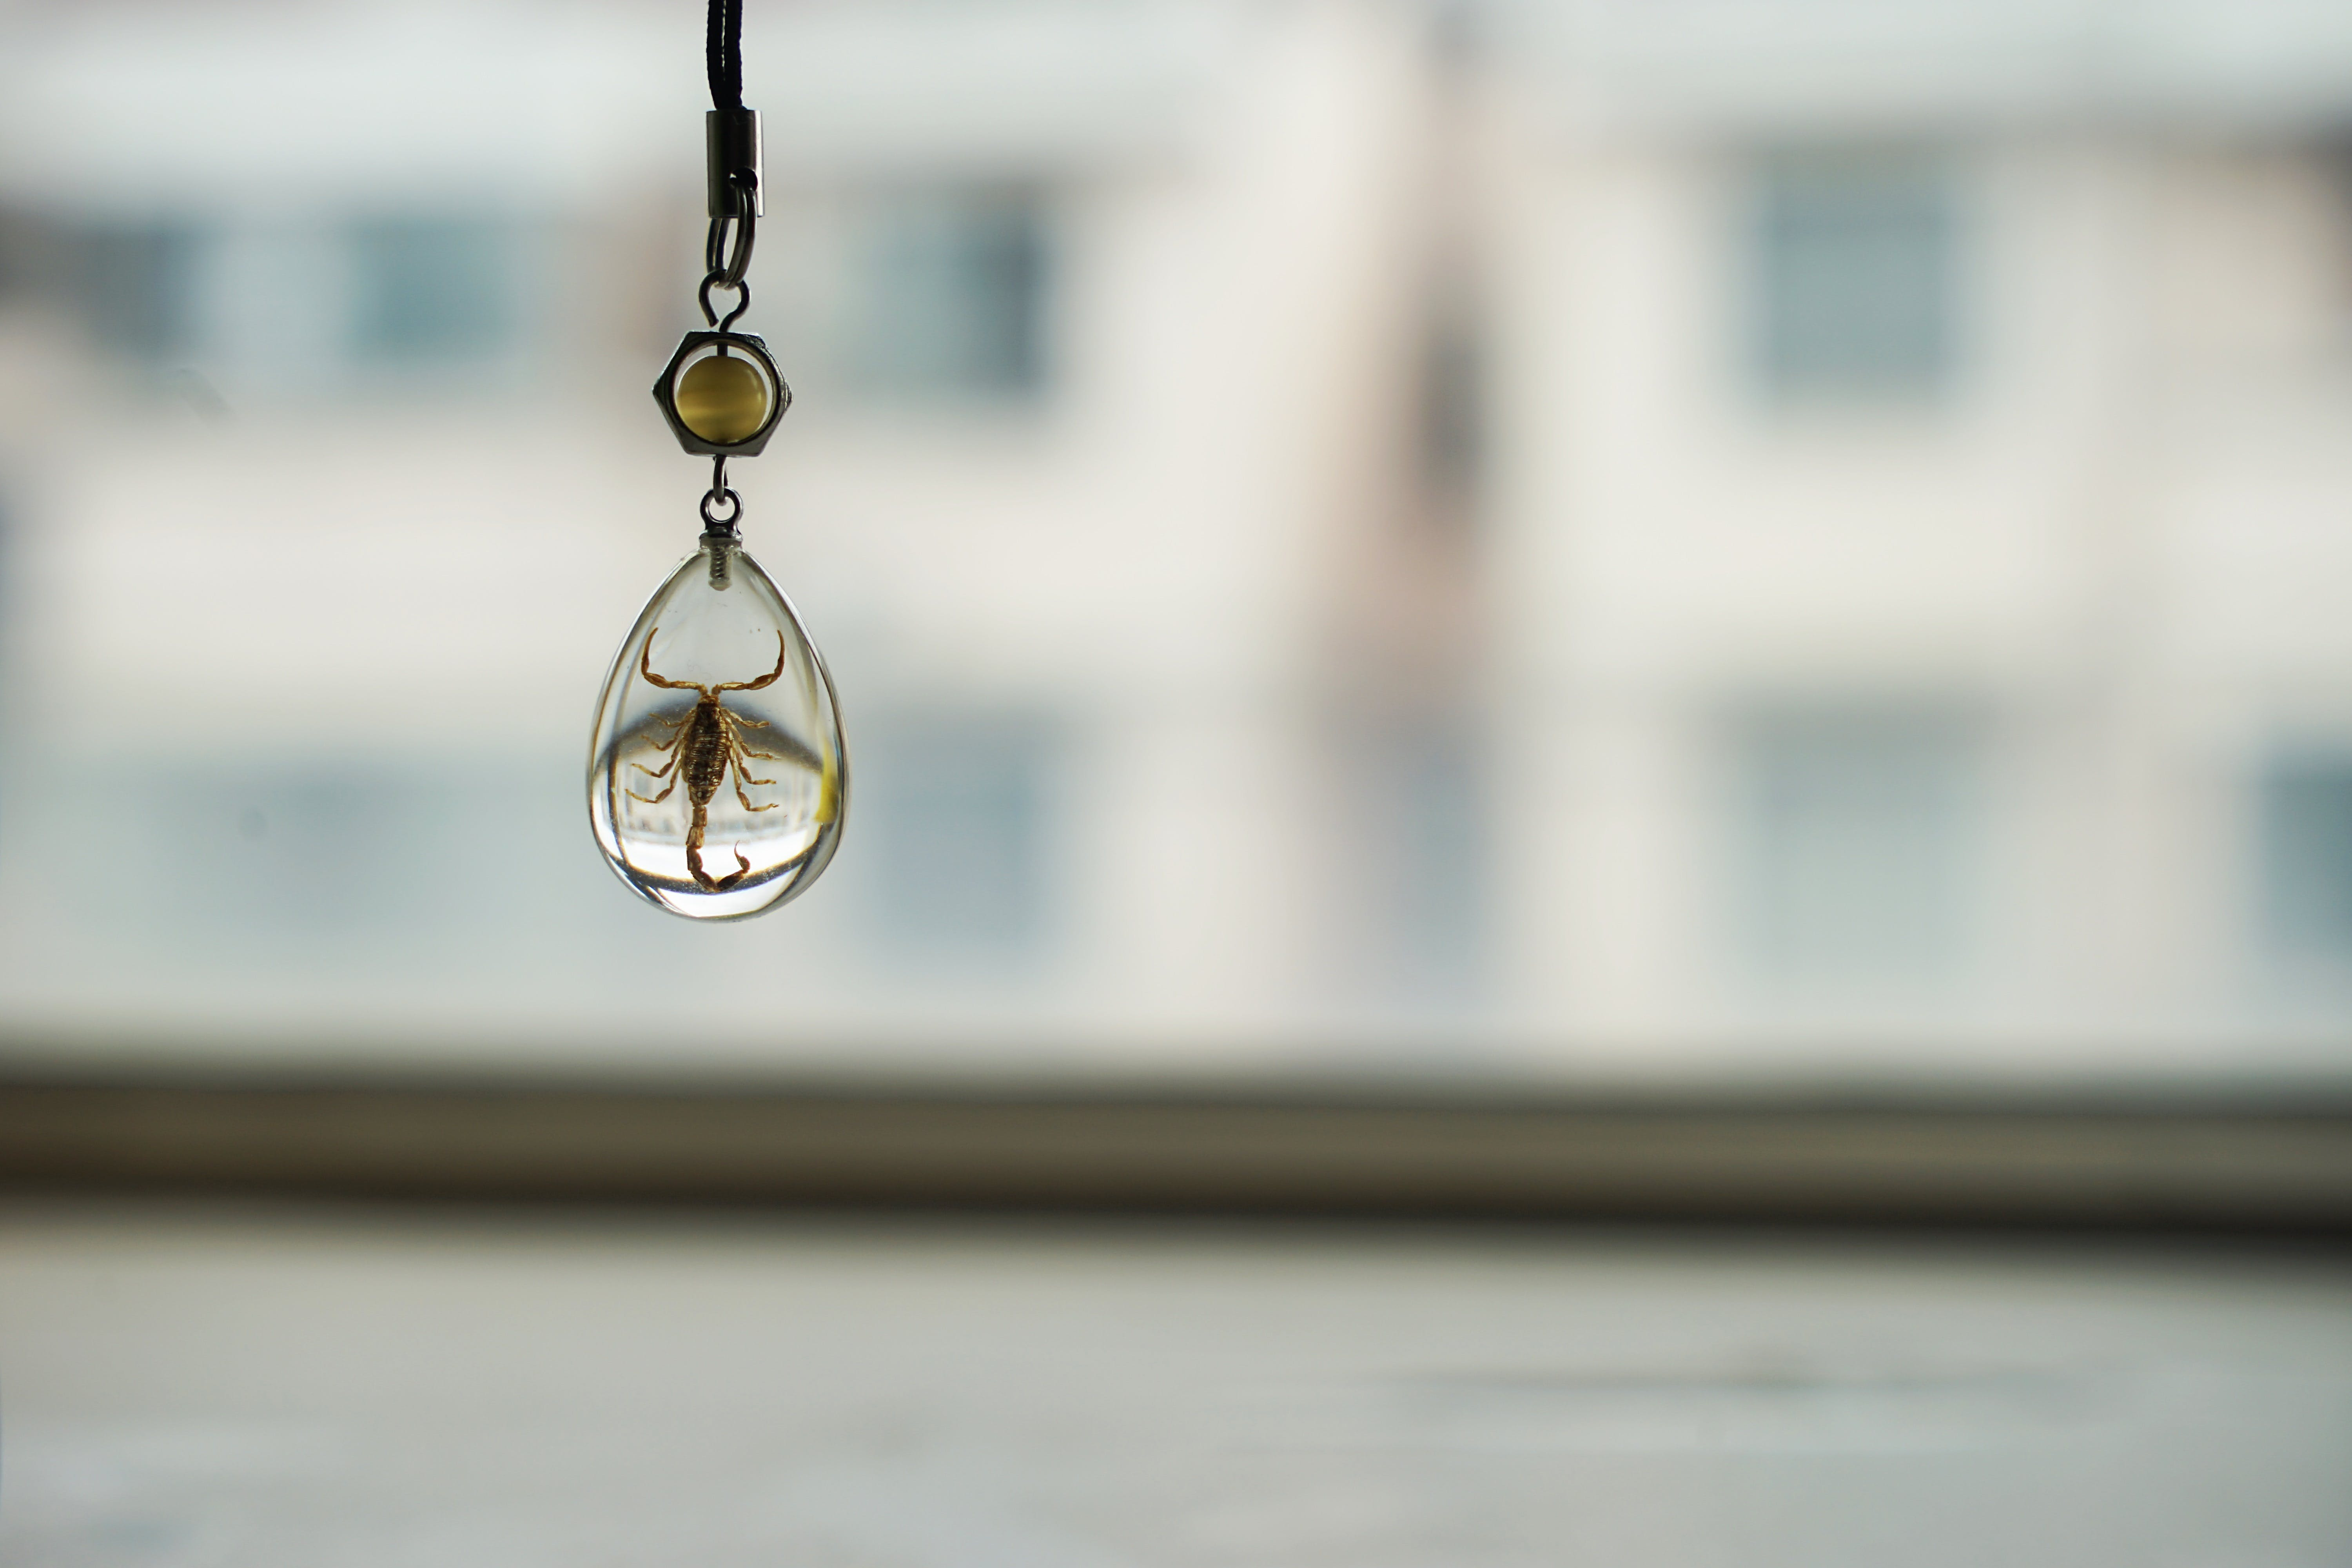 Selective Focus Photography of Glass Hanging Decor